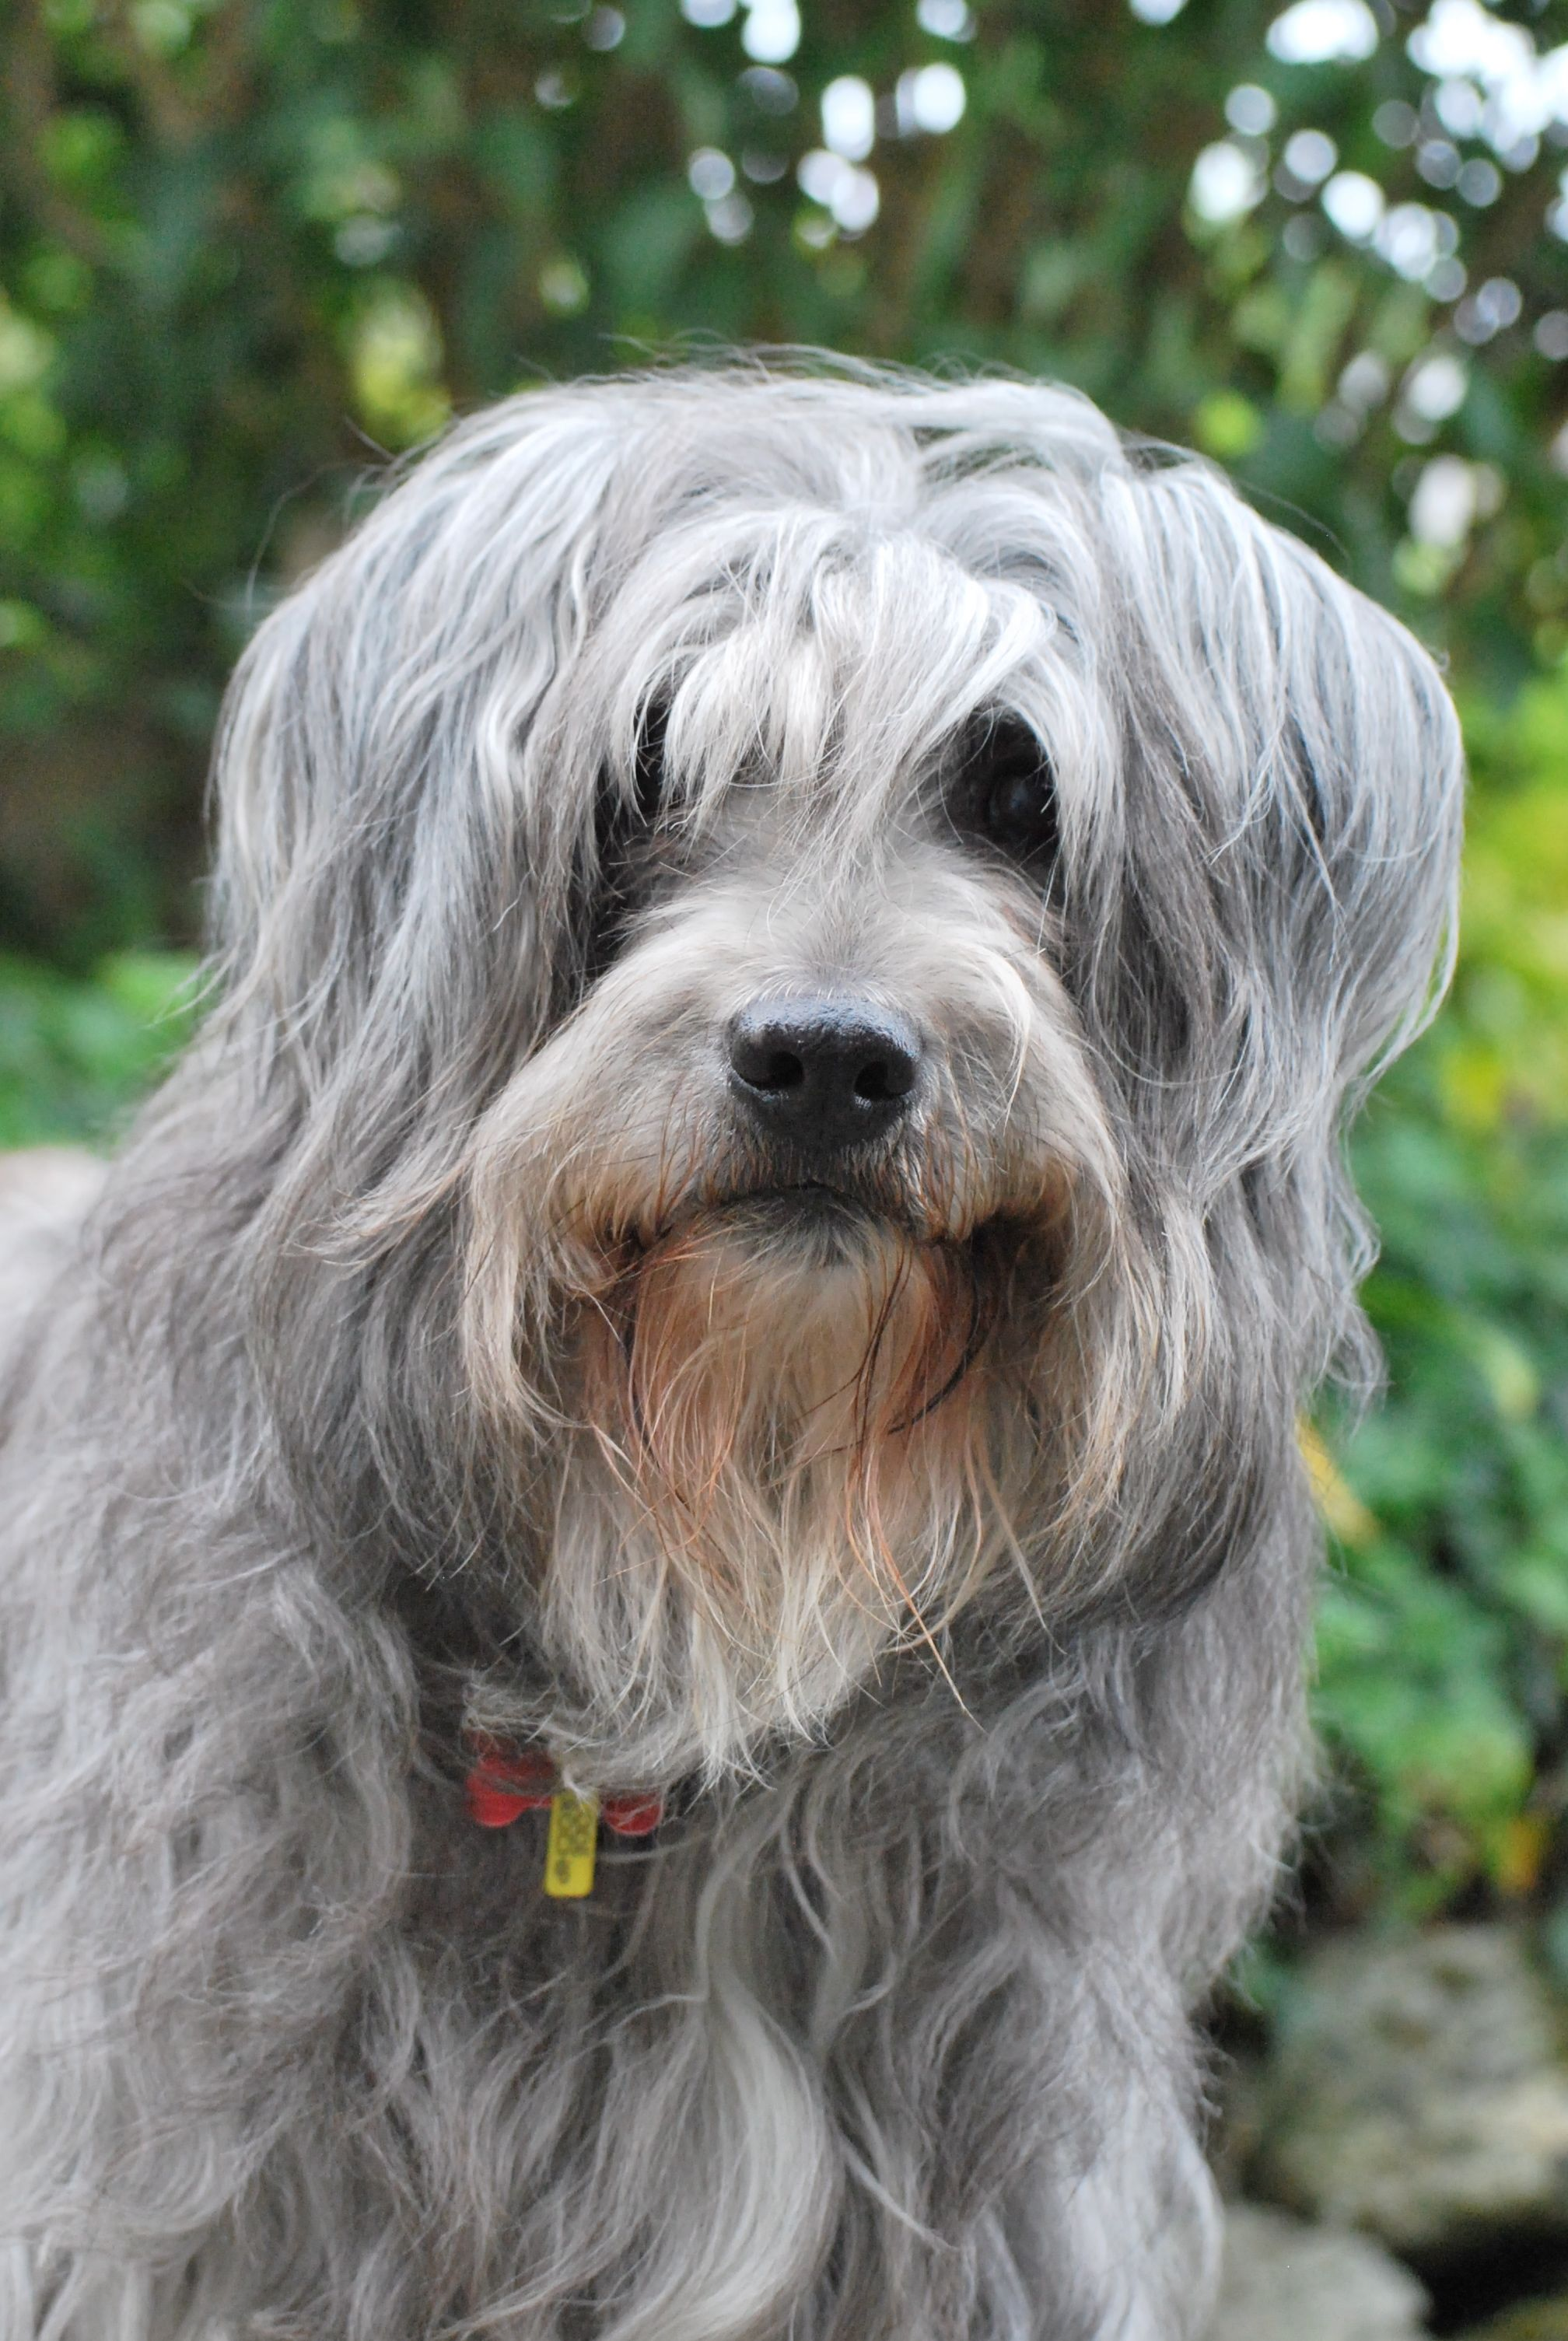 Bearded Collie Dog Breed Information Bearded Collie Dog